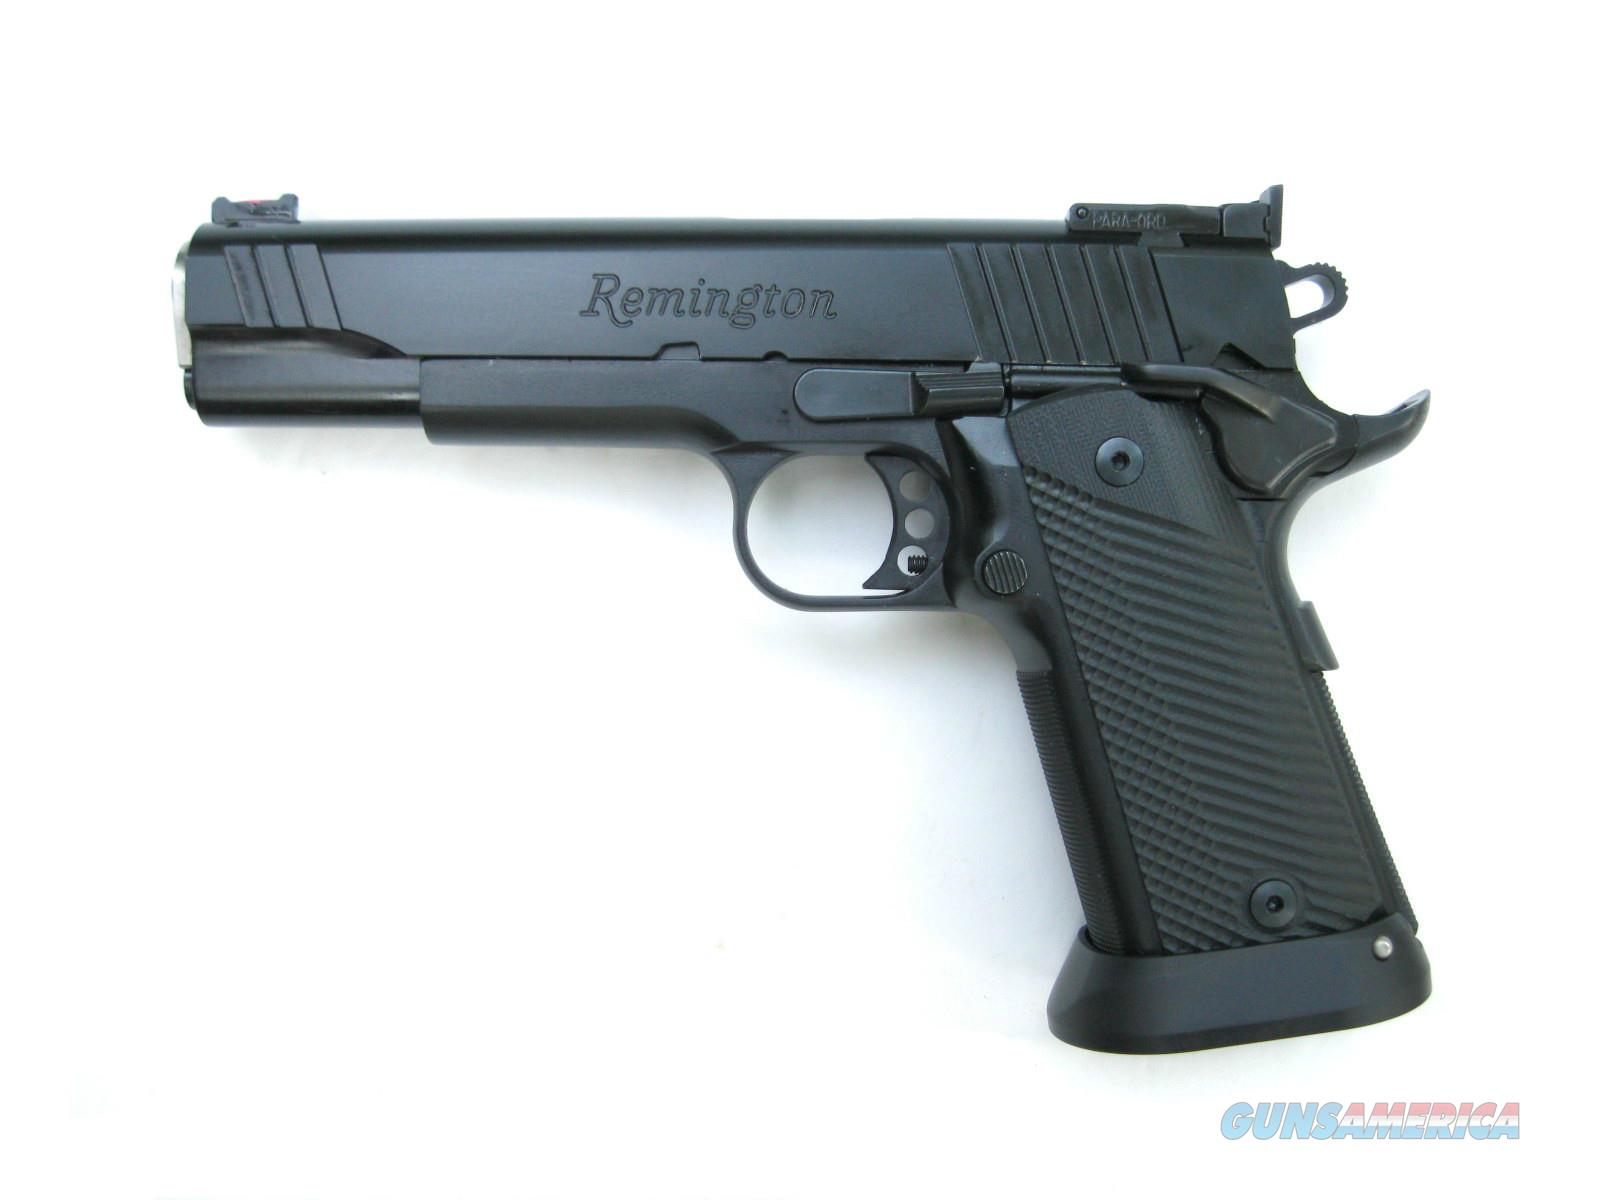 "Remington R1 1911 .40 S&W IonBond FO Ambi 5"" 18 Round High-Cap 96714  *NEW*  Guns > Pistols > Remington Pistols - Modern > 1911"